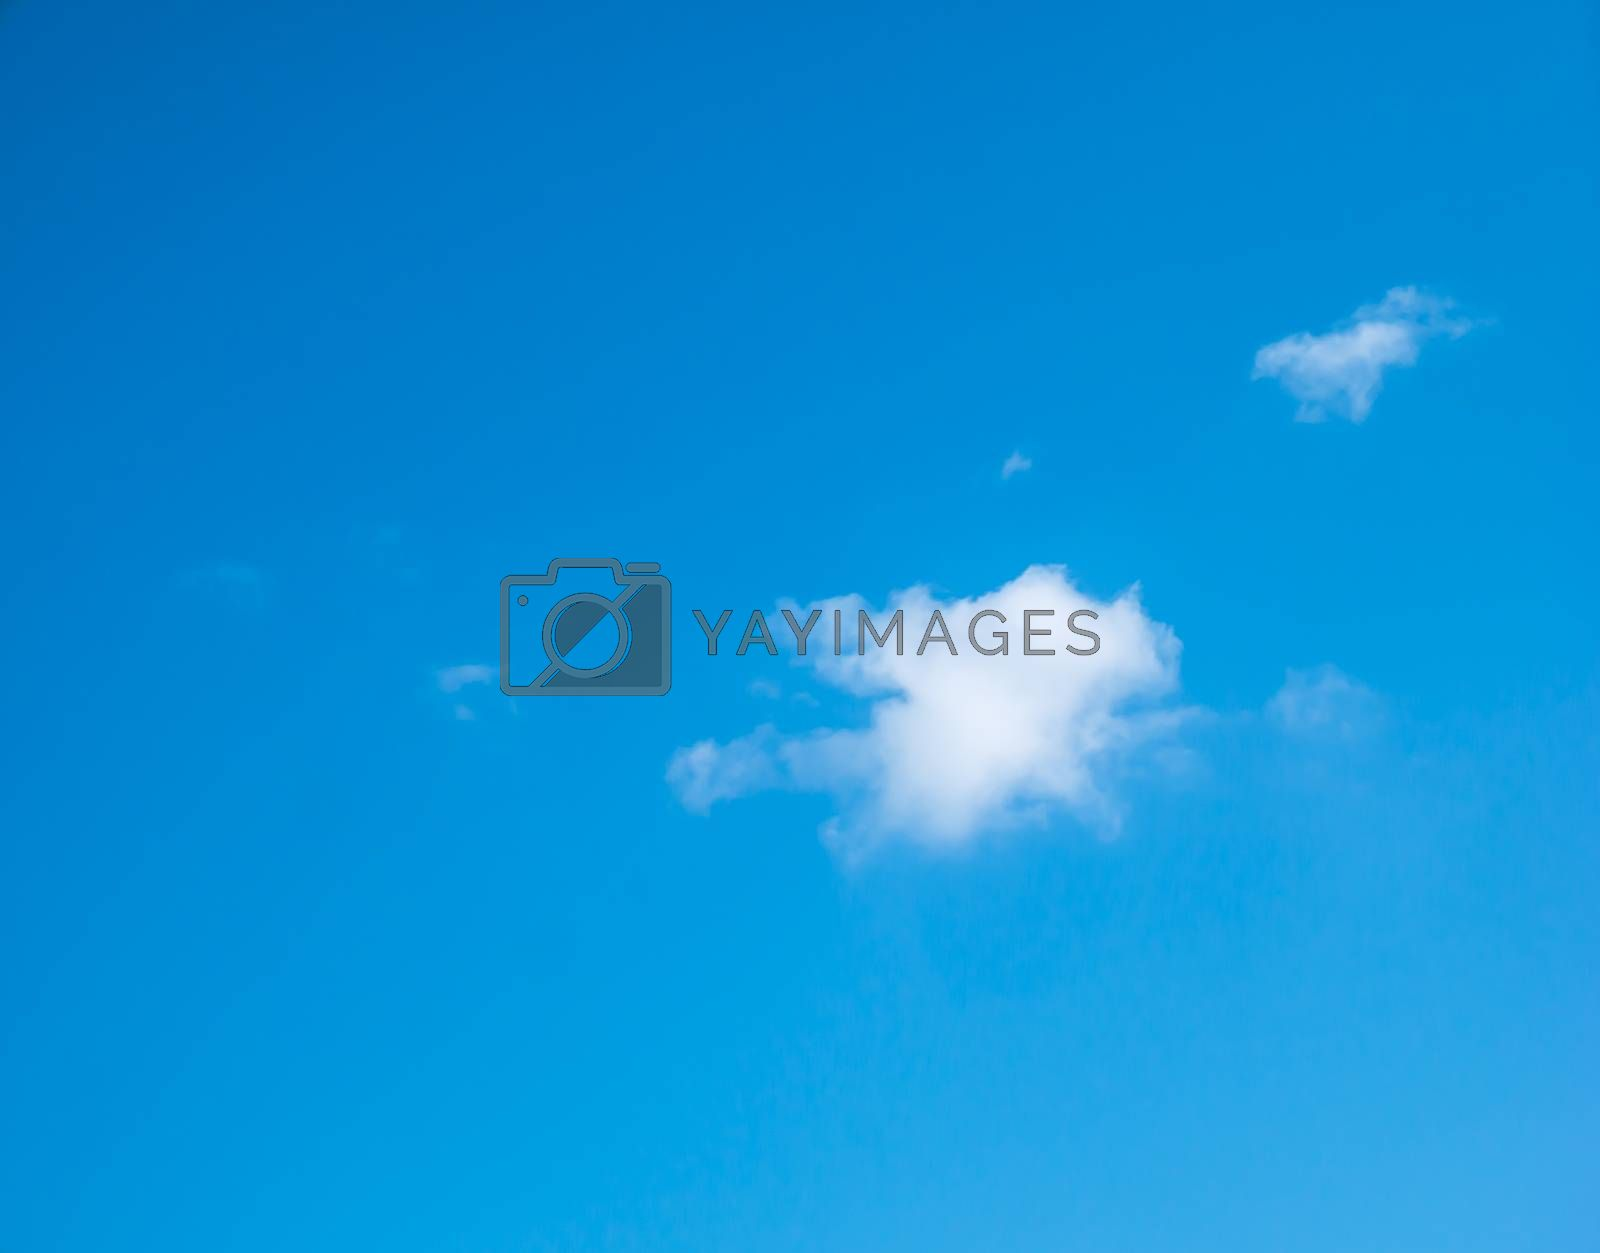 Royalty free image of Sky and clouds by nikky1972